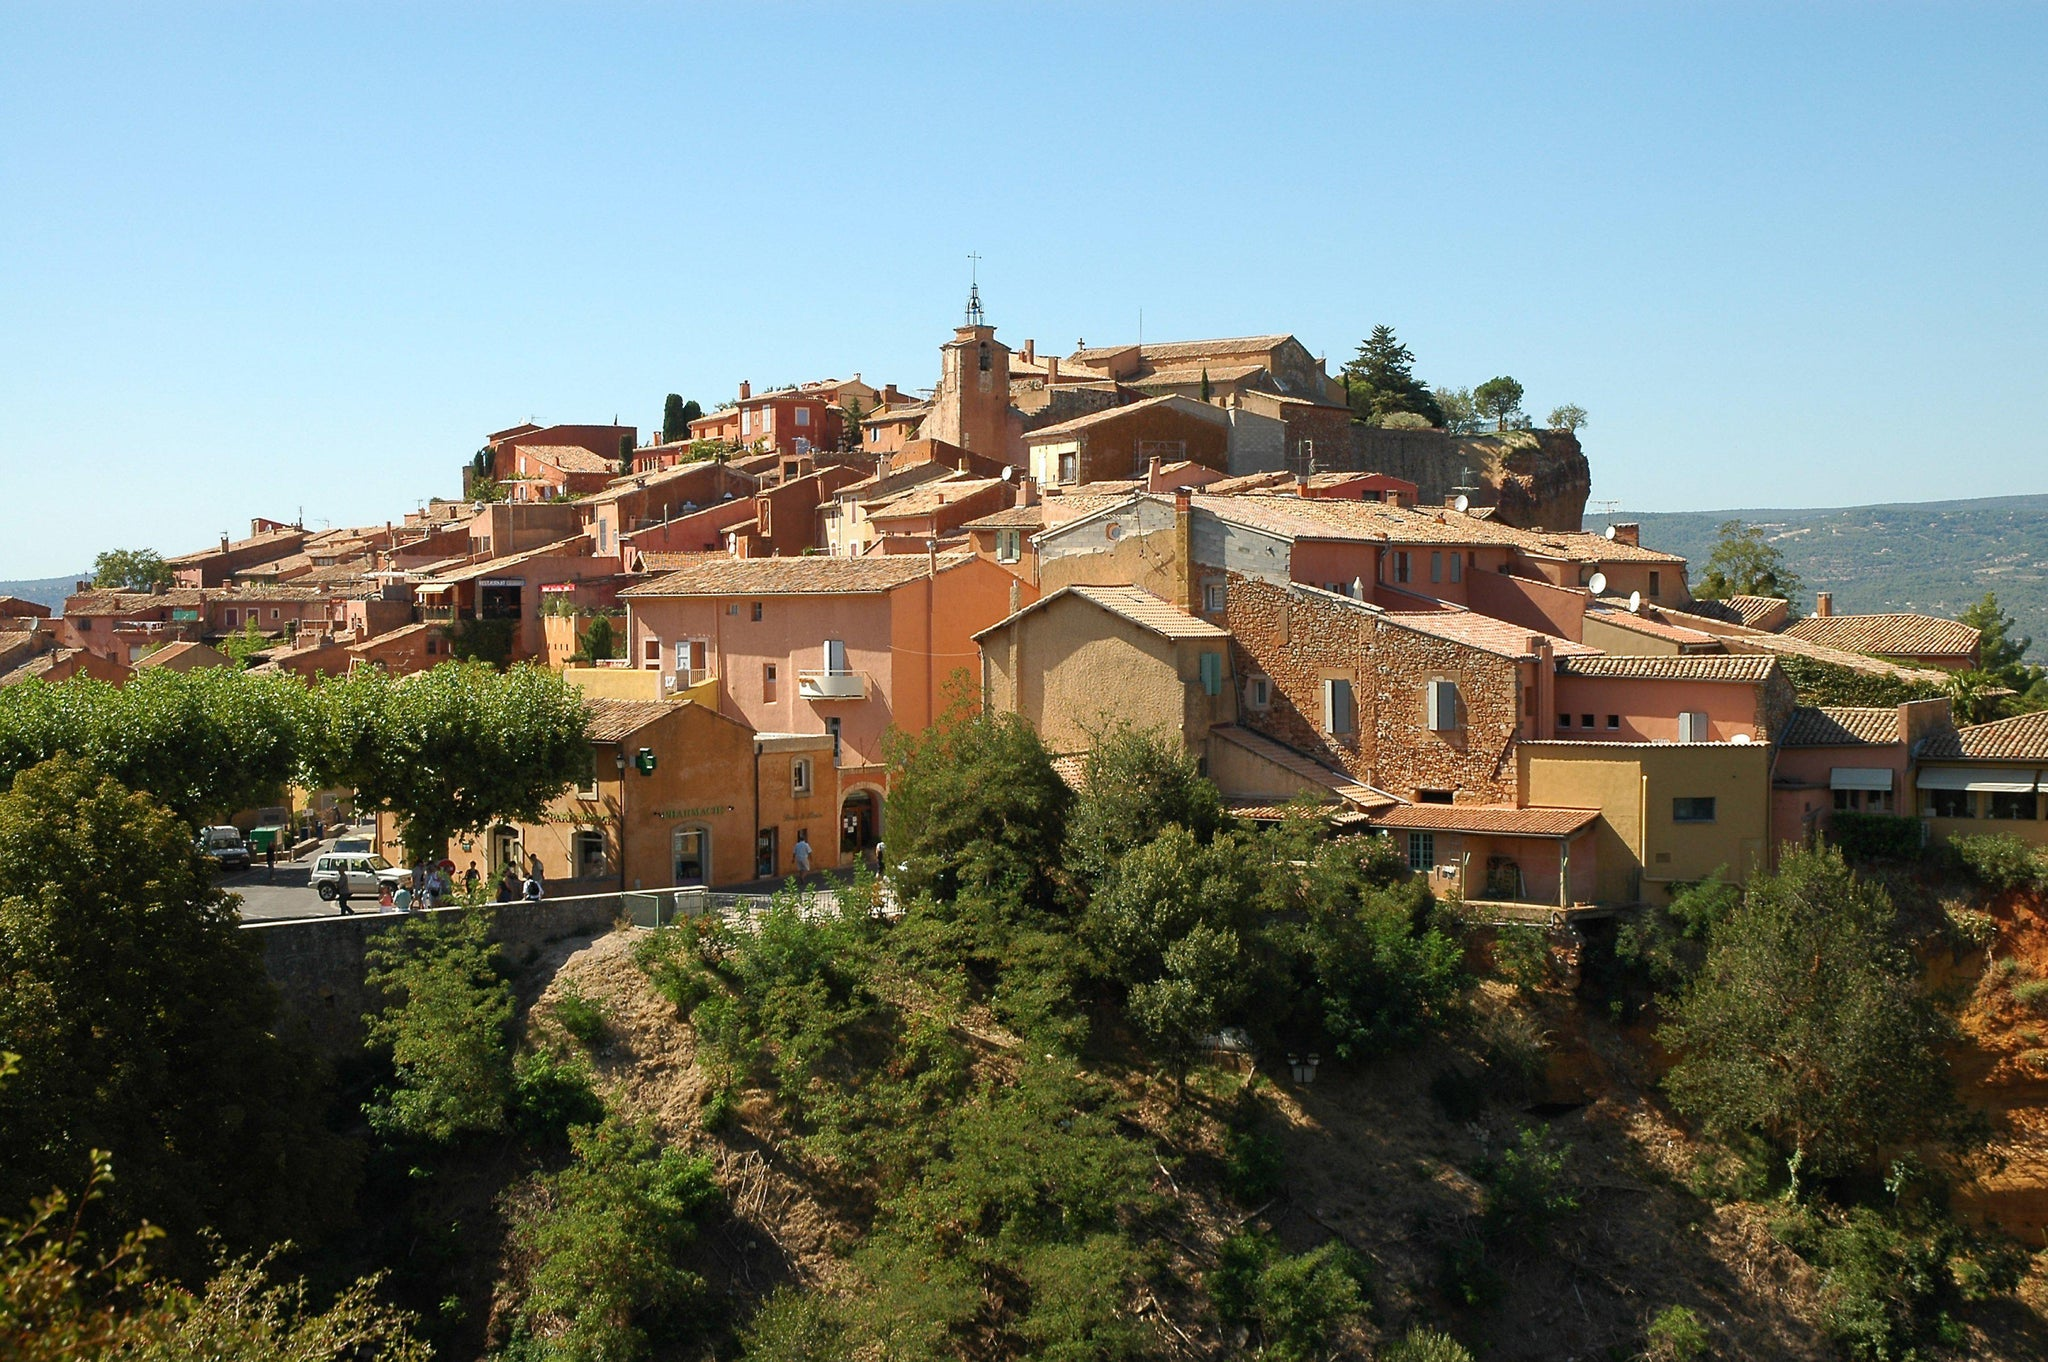 Houses on the Hillside